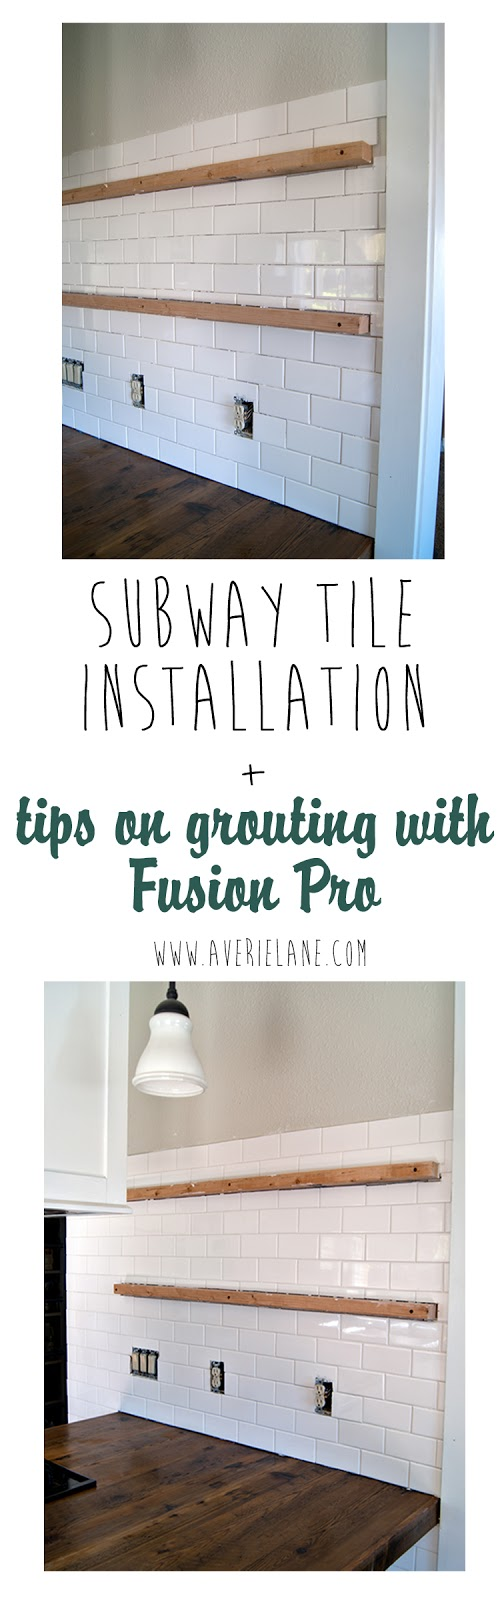 Subway tile installation tips on grouting with fusion pro thanks dailygadgetfo Images